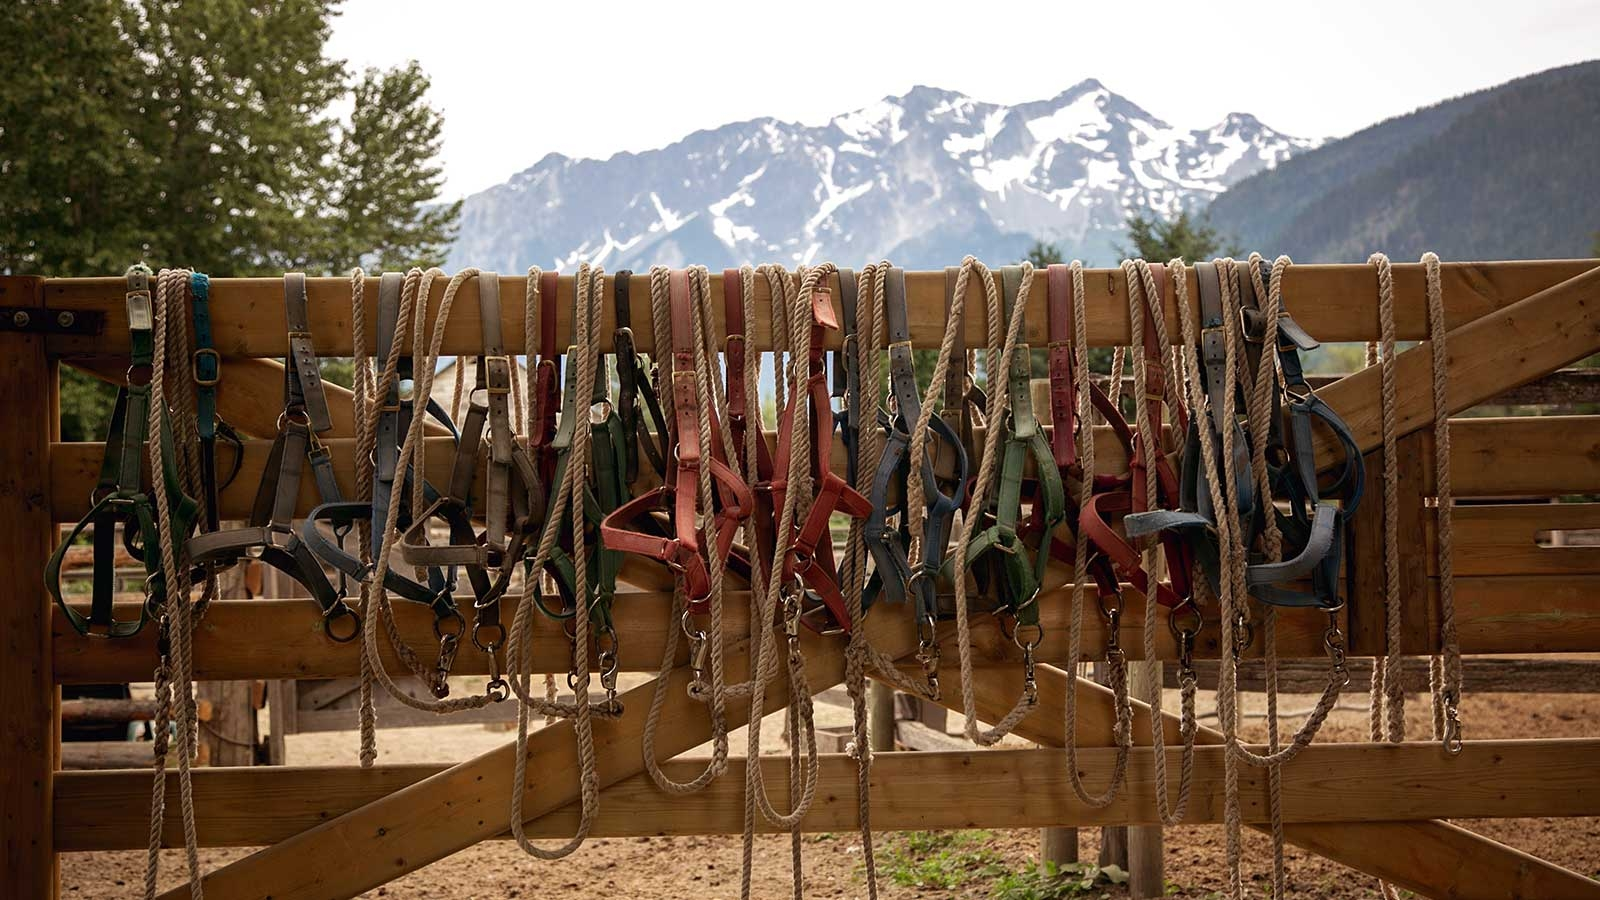 headcollars hanging over a wooden fence with scenic mountains in back